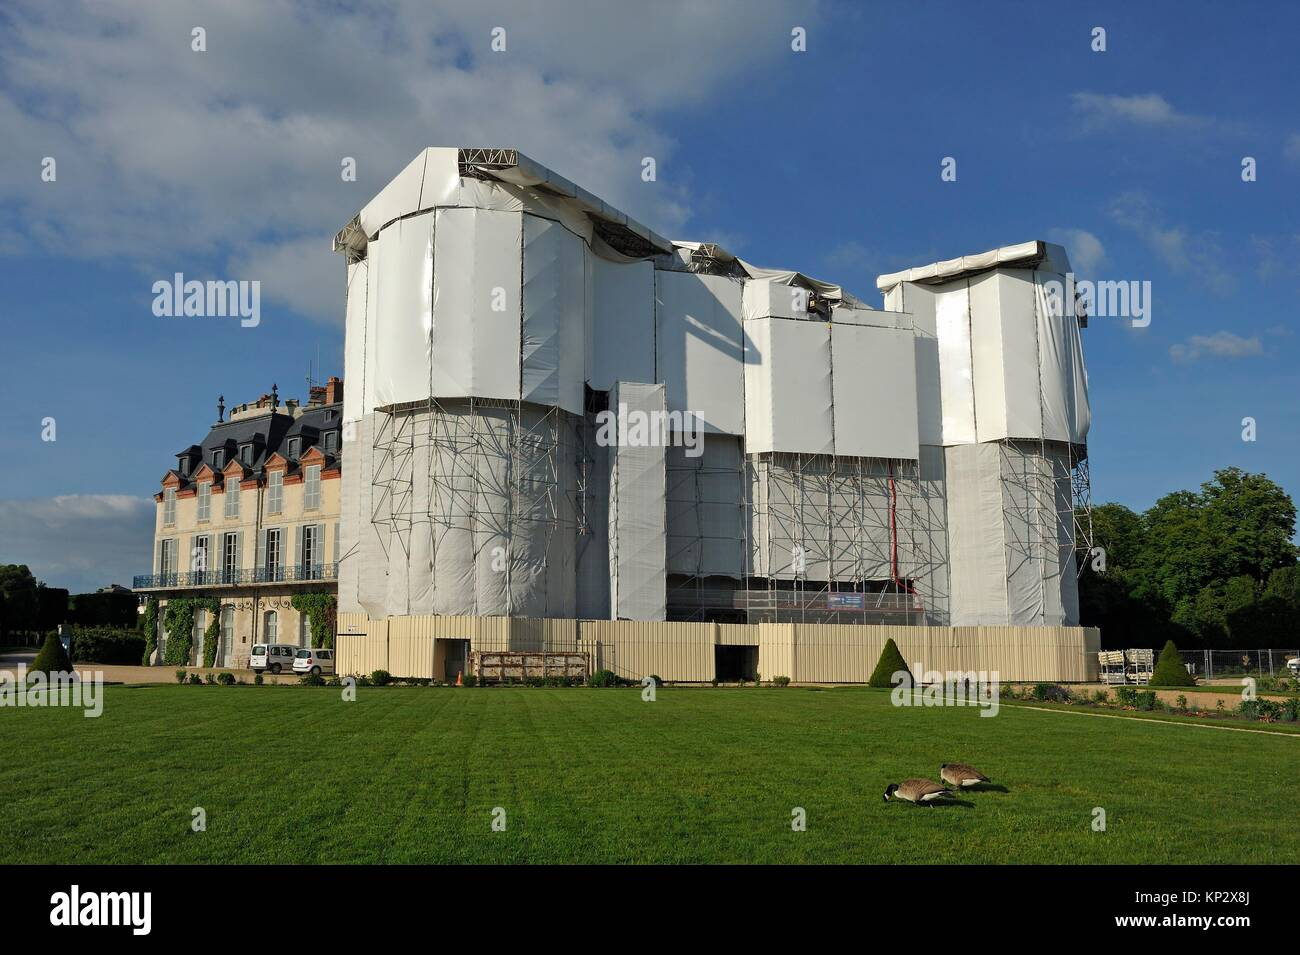 Chateau of Rambouillet under repair, Department of Yvelines, Ile-de-France region, France, Europe. - Stock Image